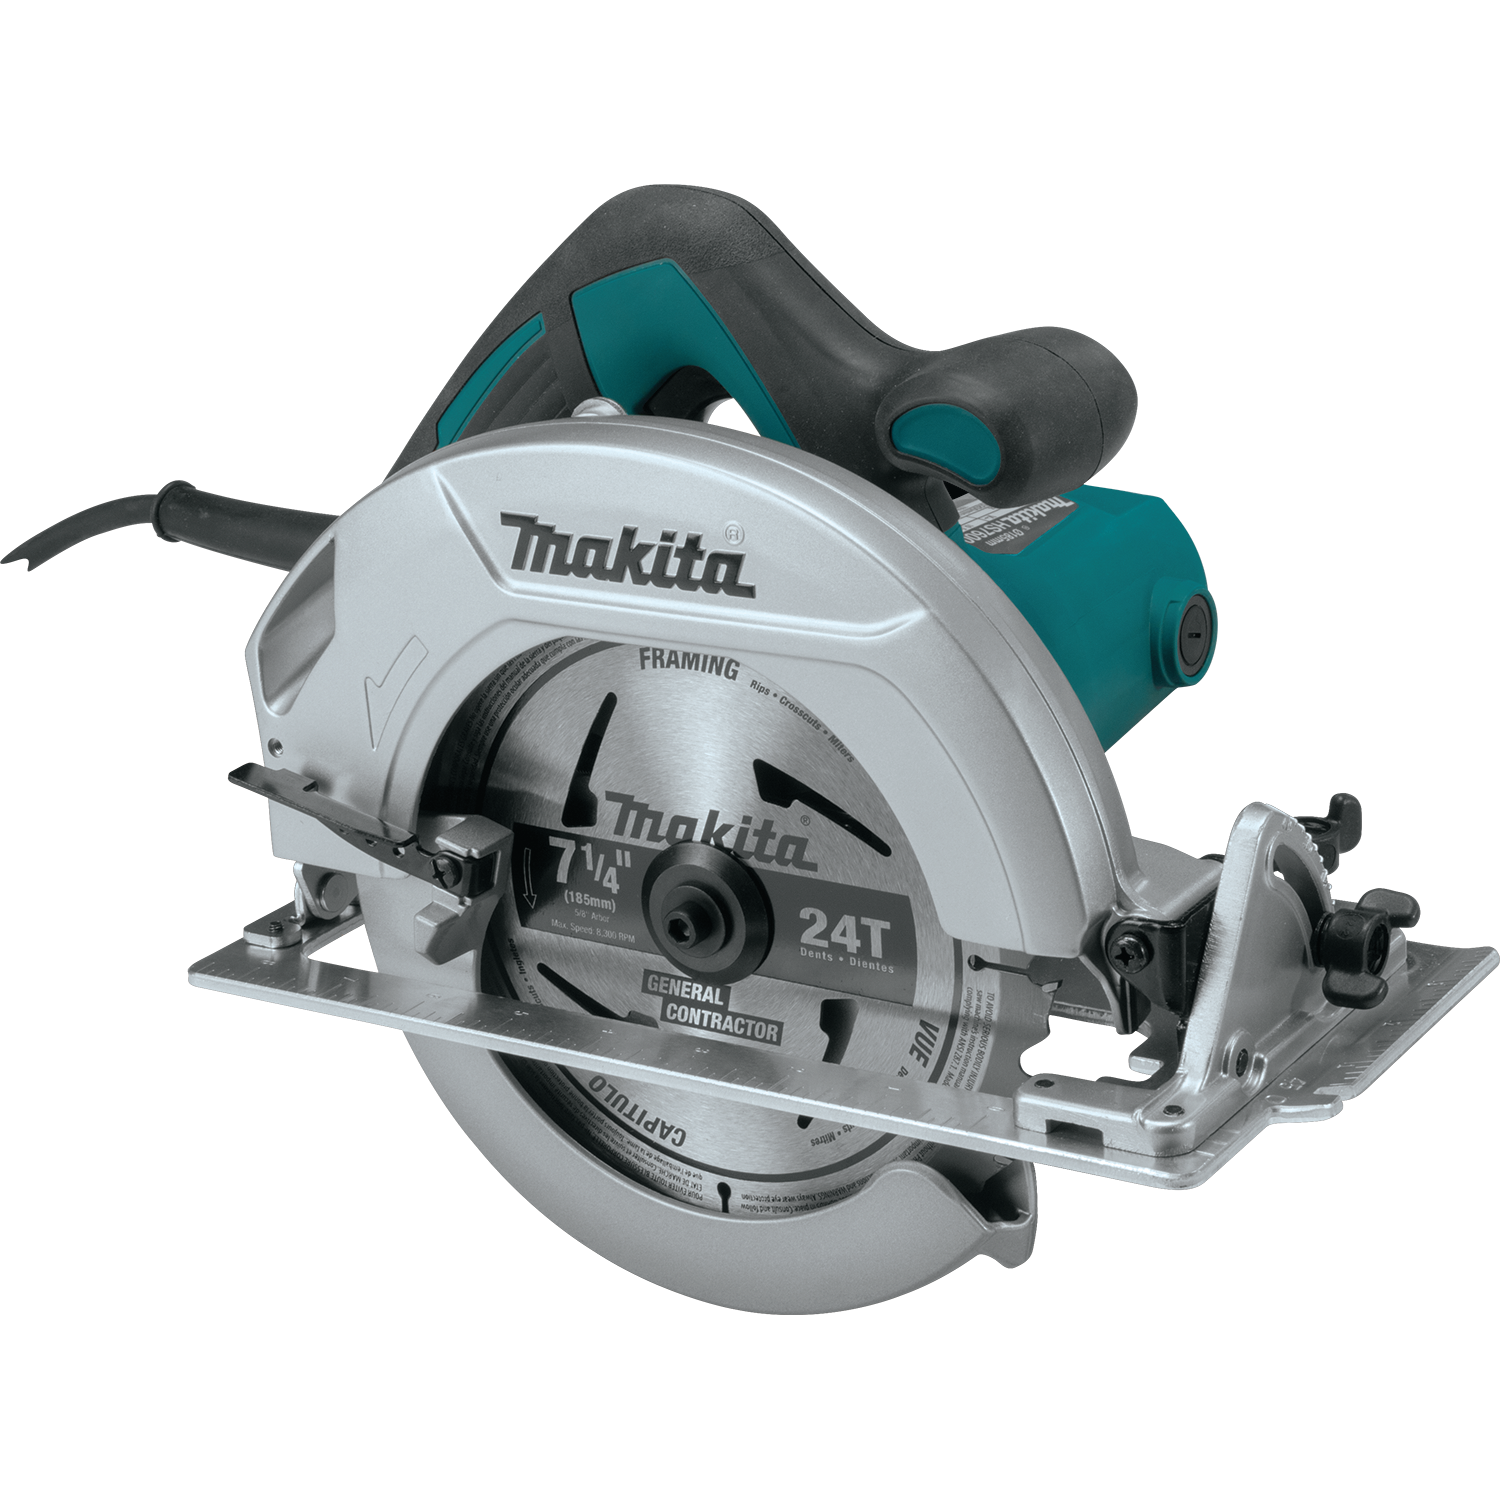 Makita usa product details hs7600 hs7600 greentooth Images